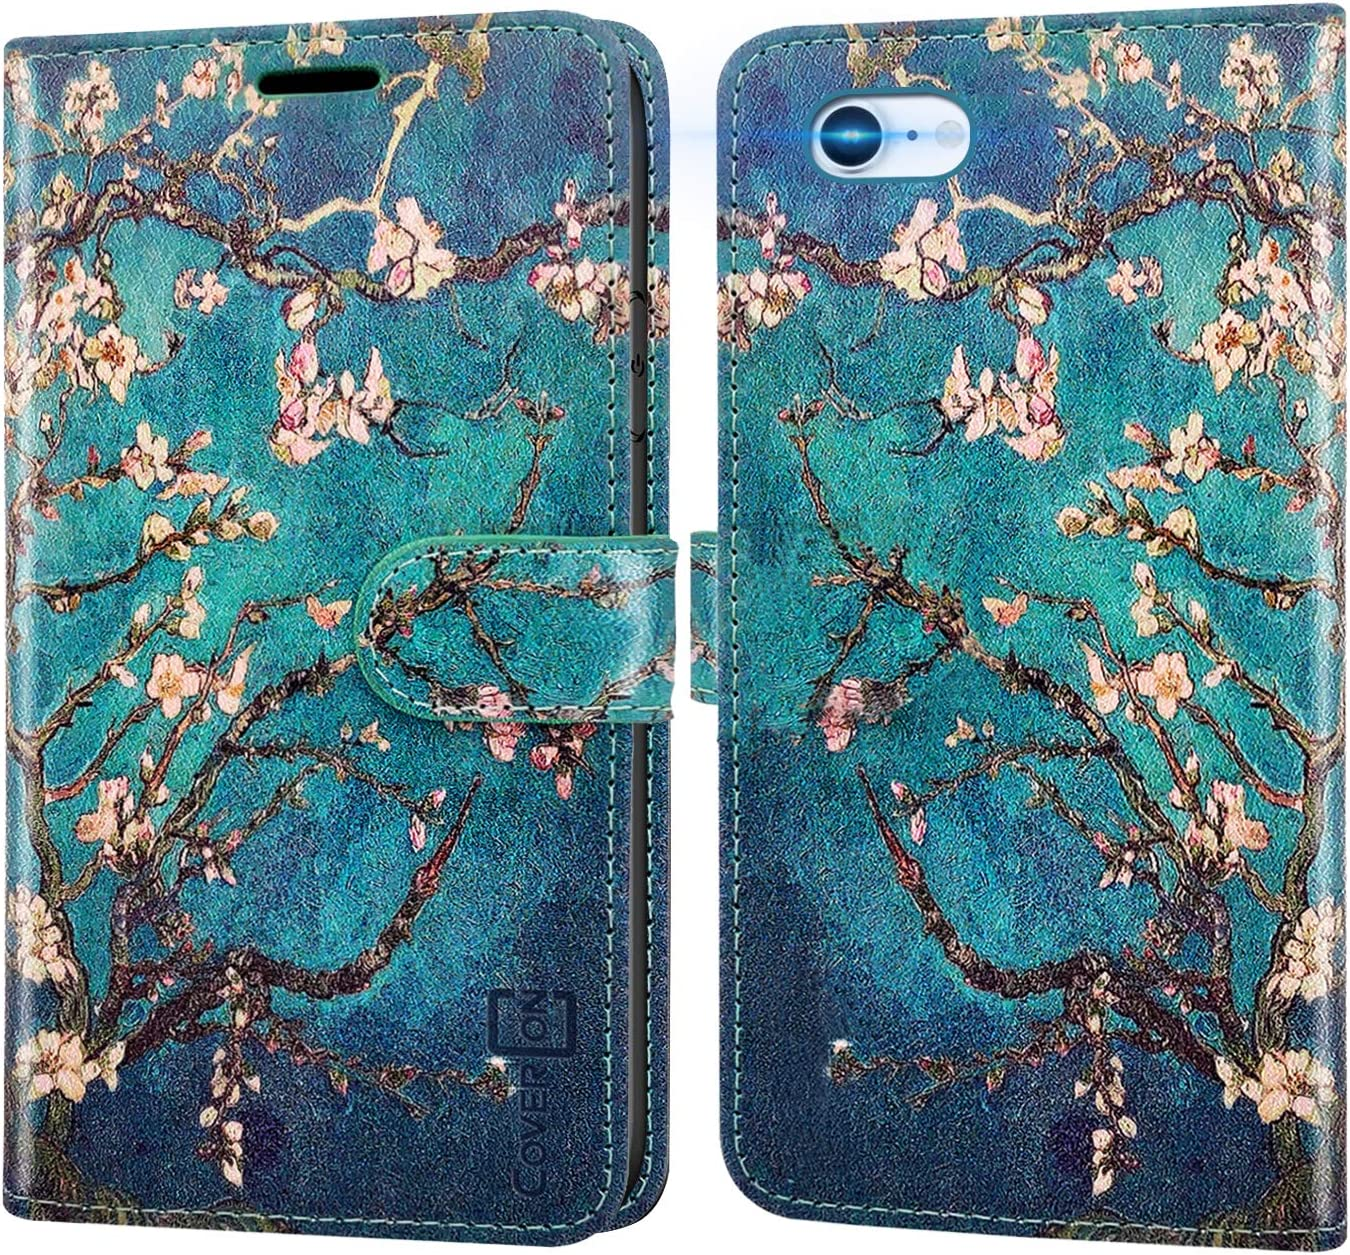 CoverON Wallet Designed for Apple iPhone SE Case 2020 / iPhone 8 Case, RFID Blocking Flip Folio Stand PU Leather Phone Pouch - Almond Blossom